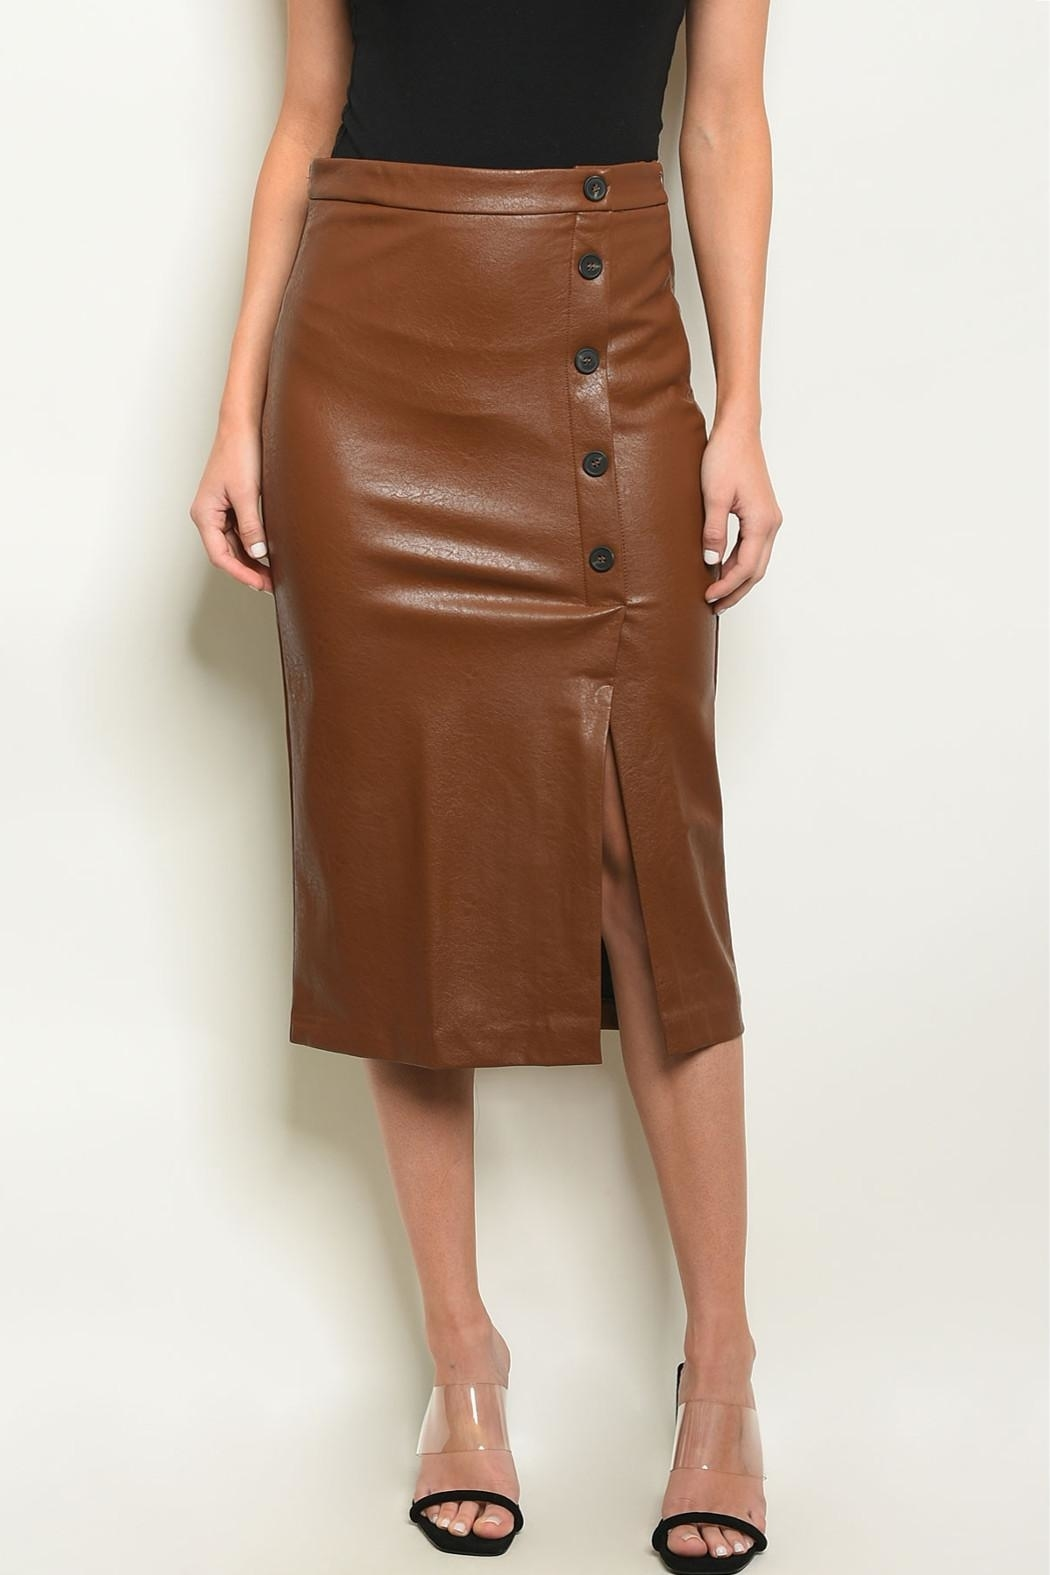 Sweet Journey Brown Leather Skirt - Main Image